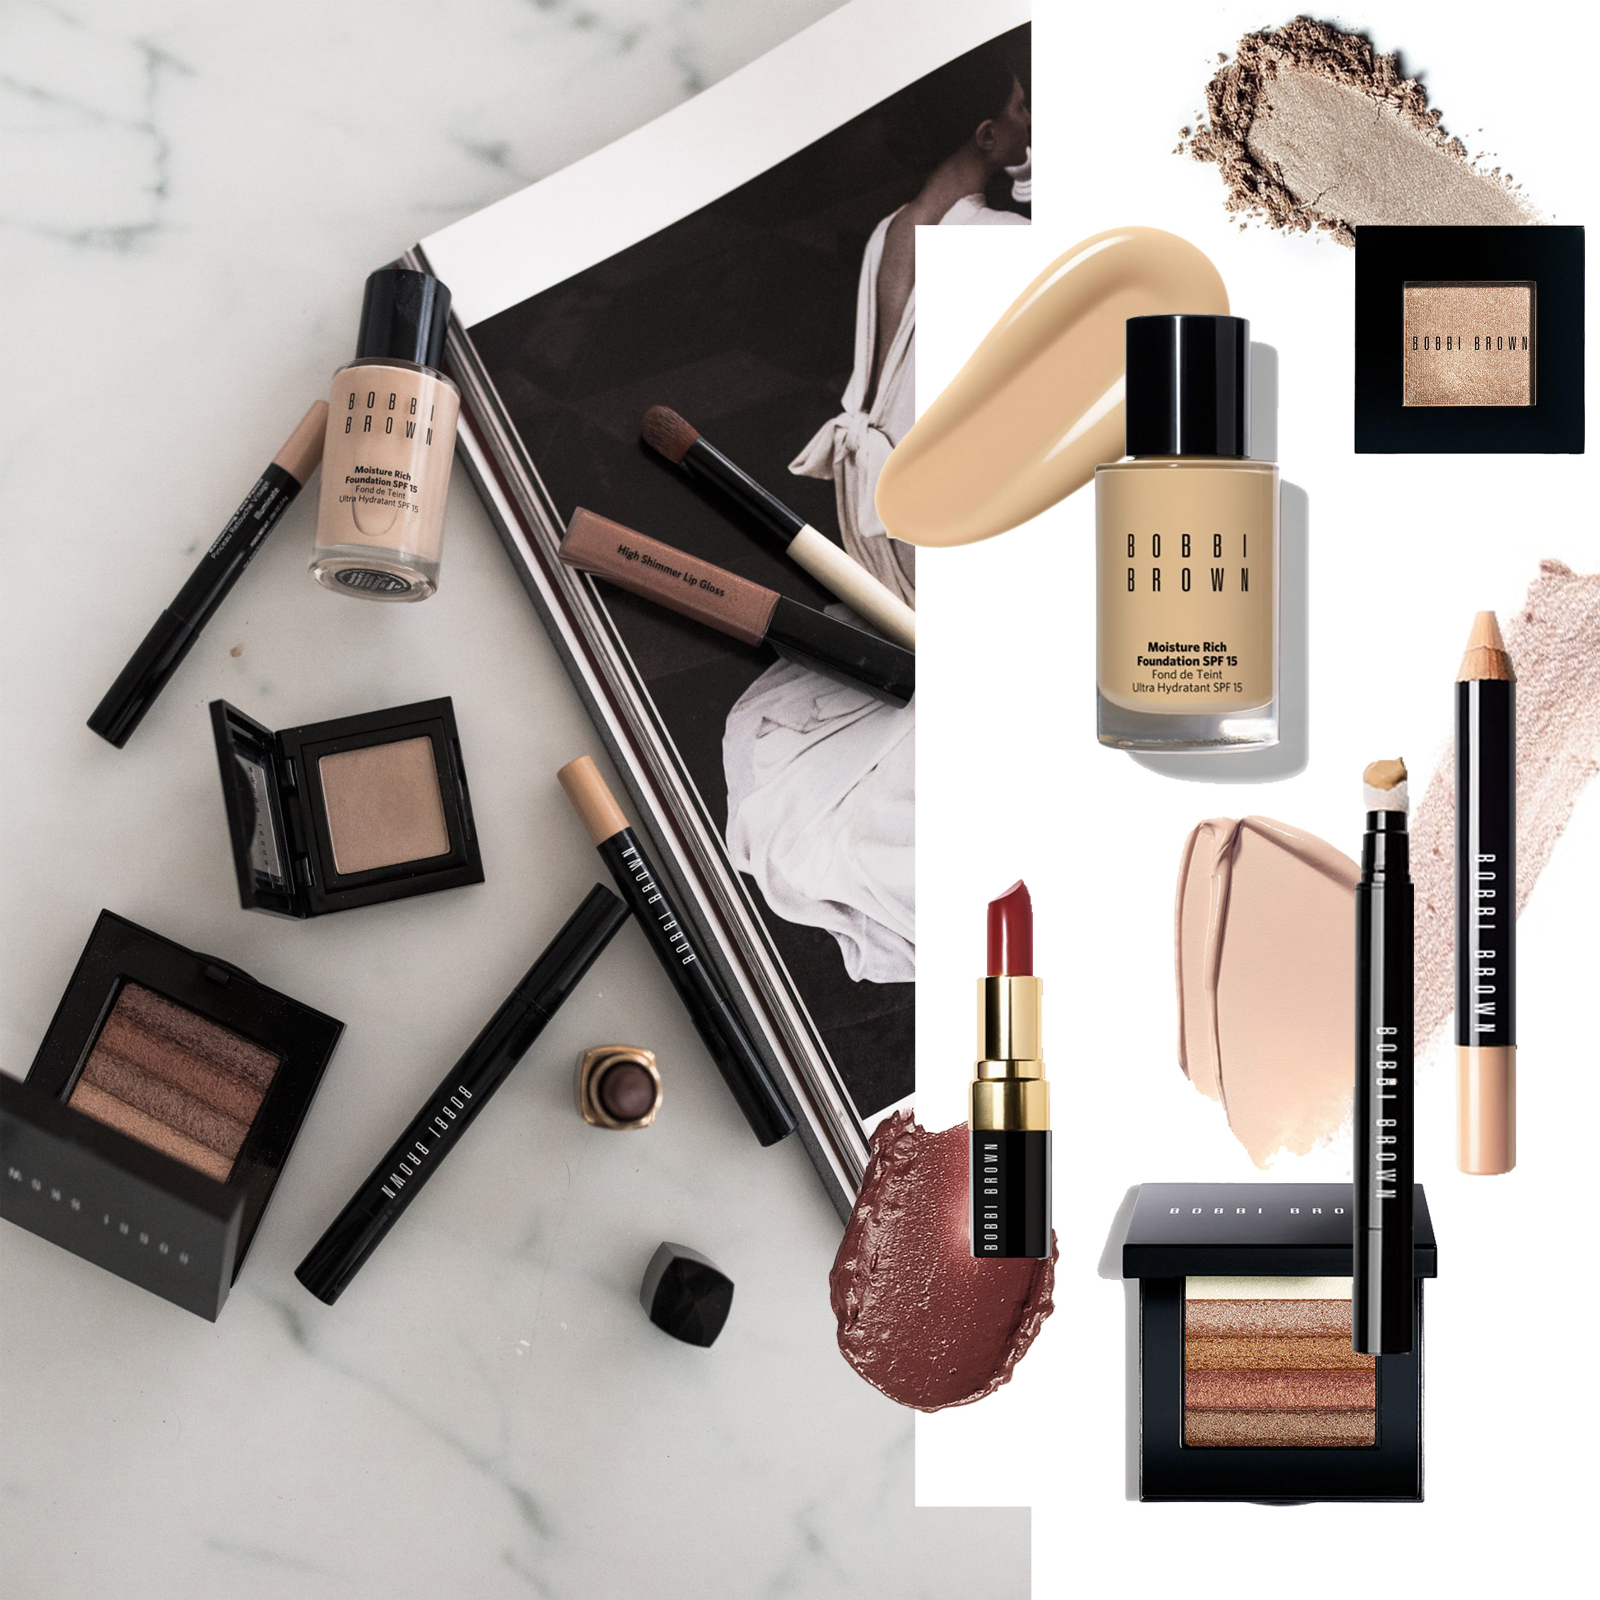 Bobbi Brown Make Up  The-Limits-of-Control-Fashion-Fashionblogger-Blogger-Berlin-Deutschland-Modeblog-Modeblogger